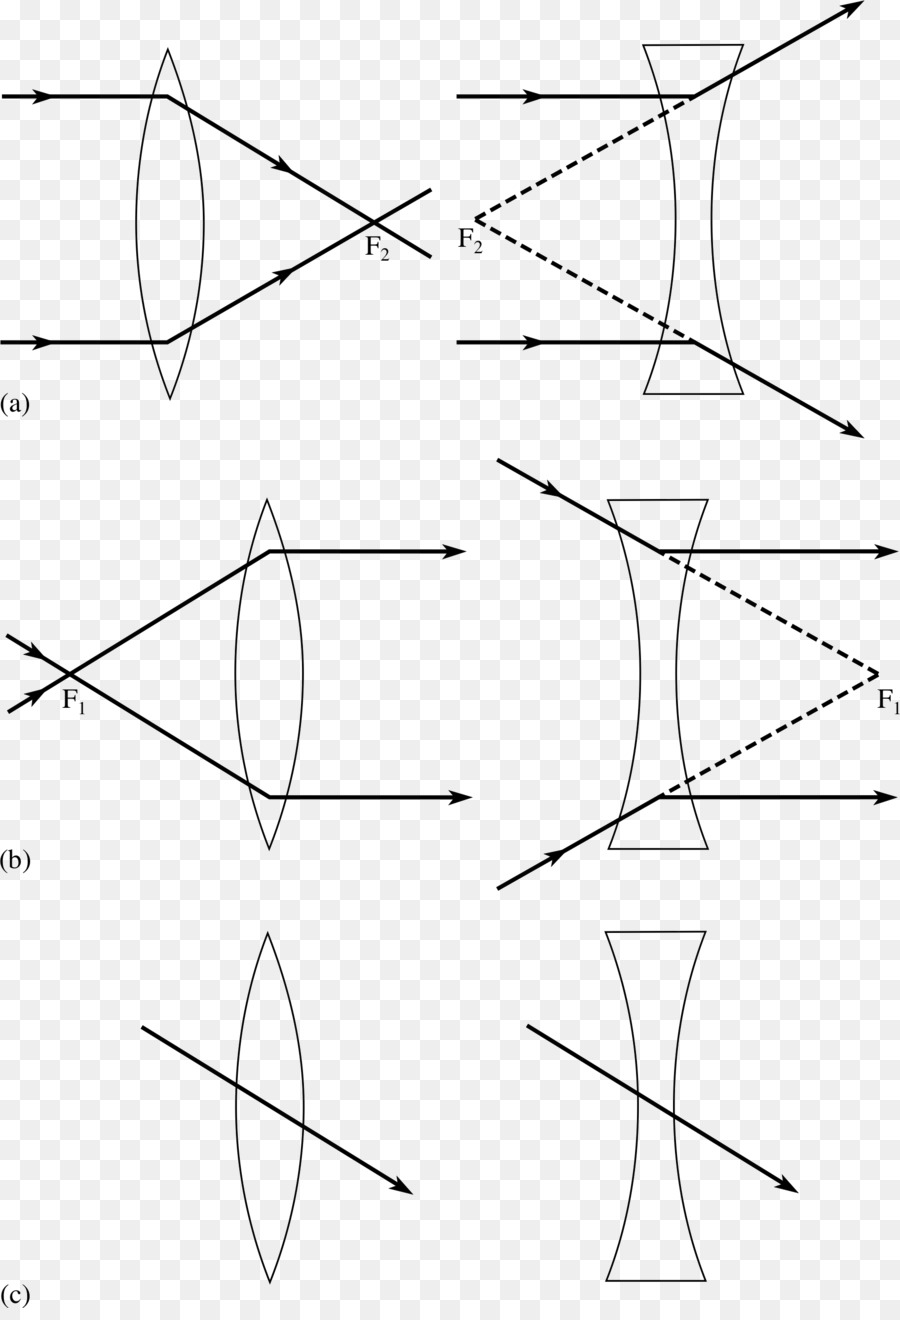 hight resolution of ray drawing diagram line art angle png